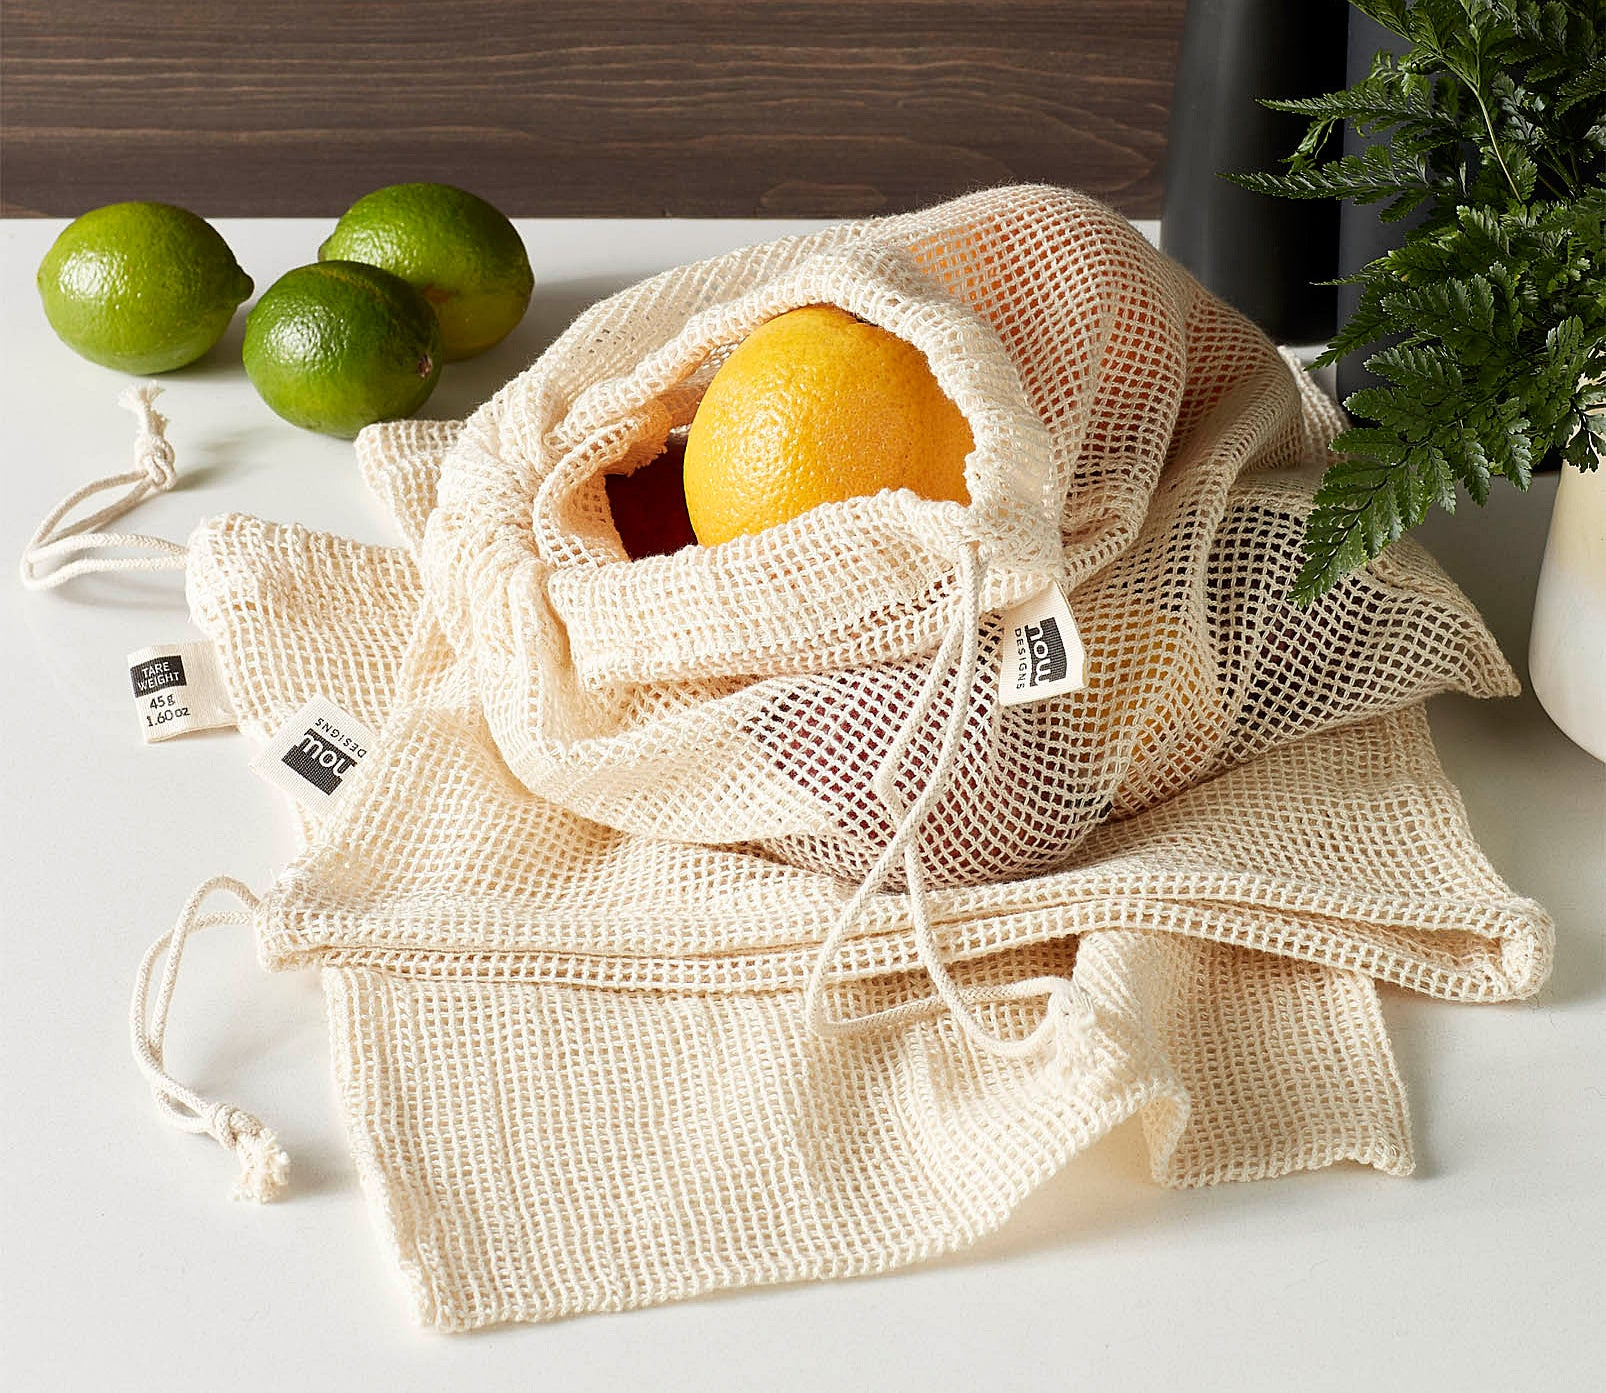 A small mesh bag filled with fruits